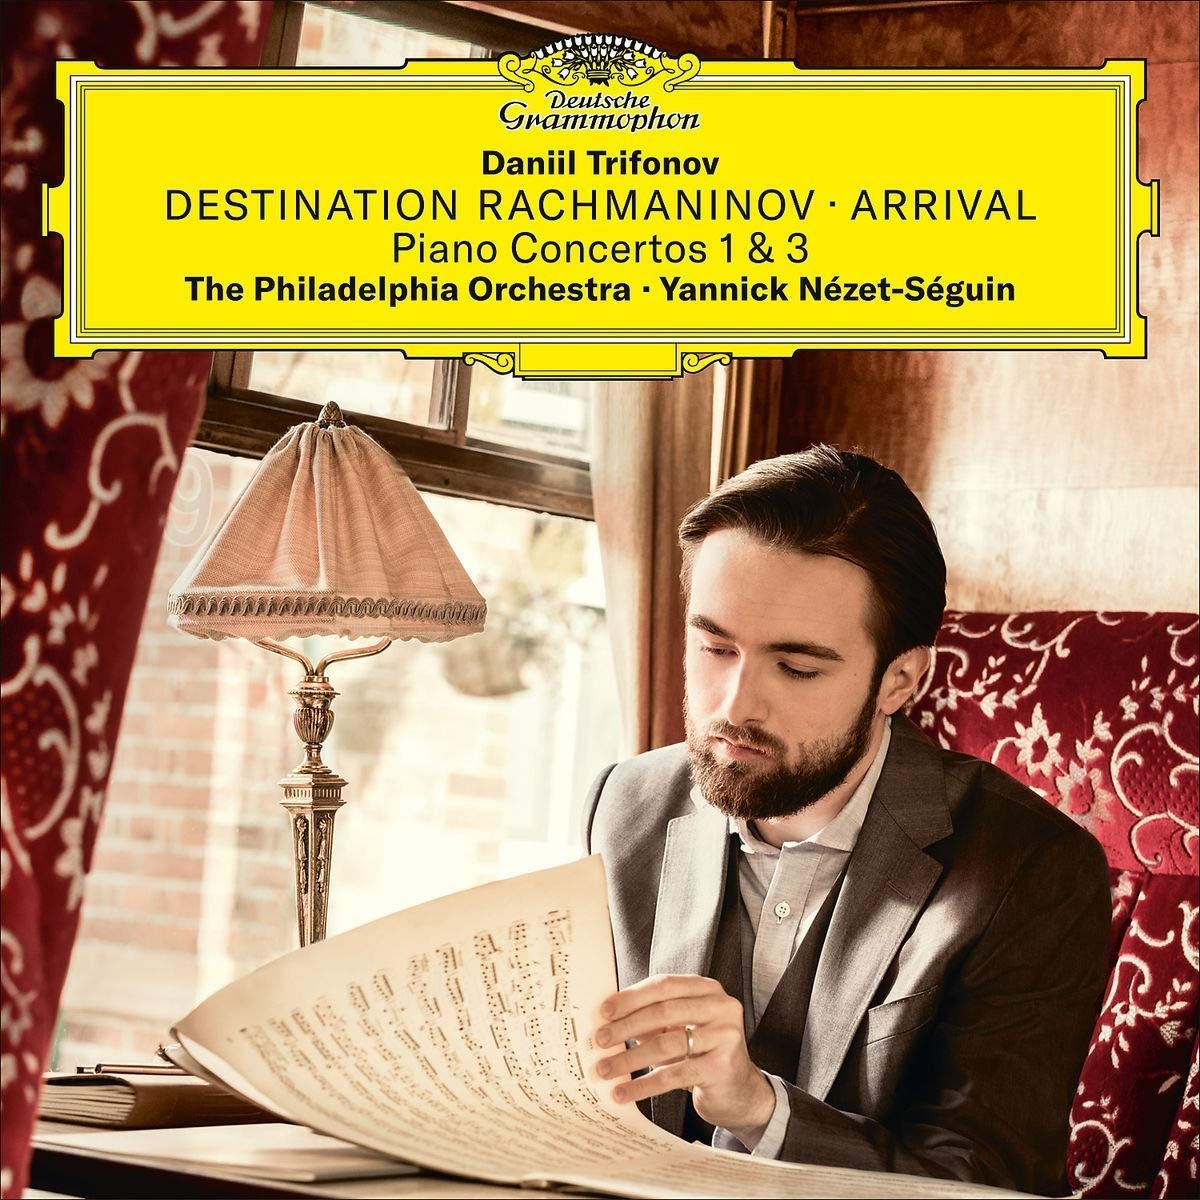 Destination Rachmaninov: Arrival